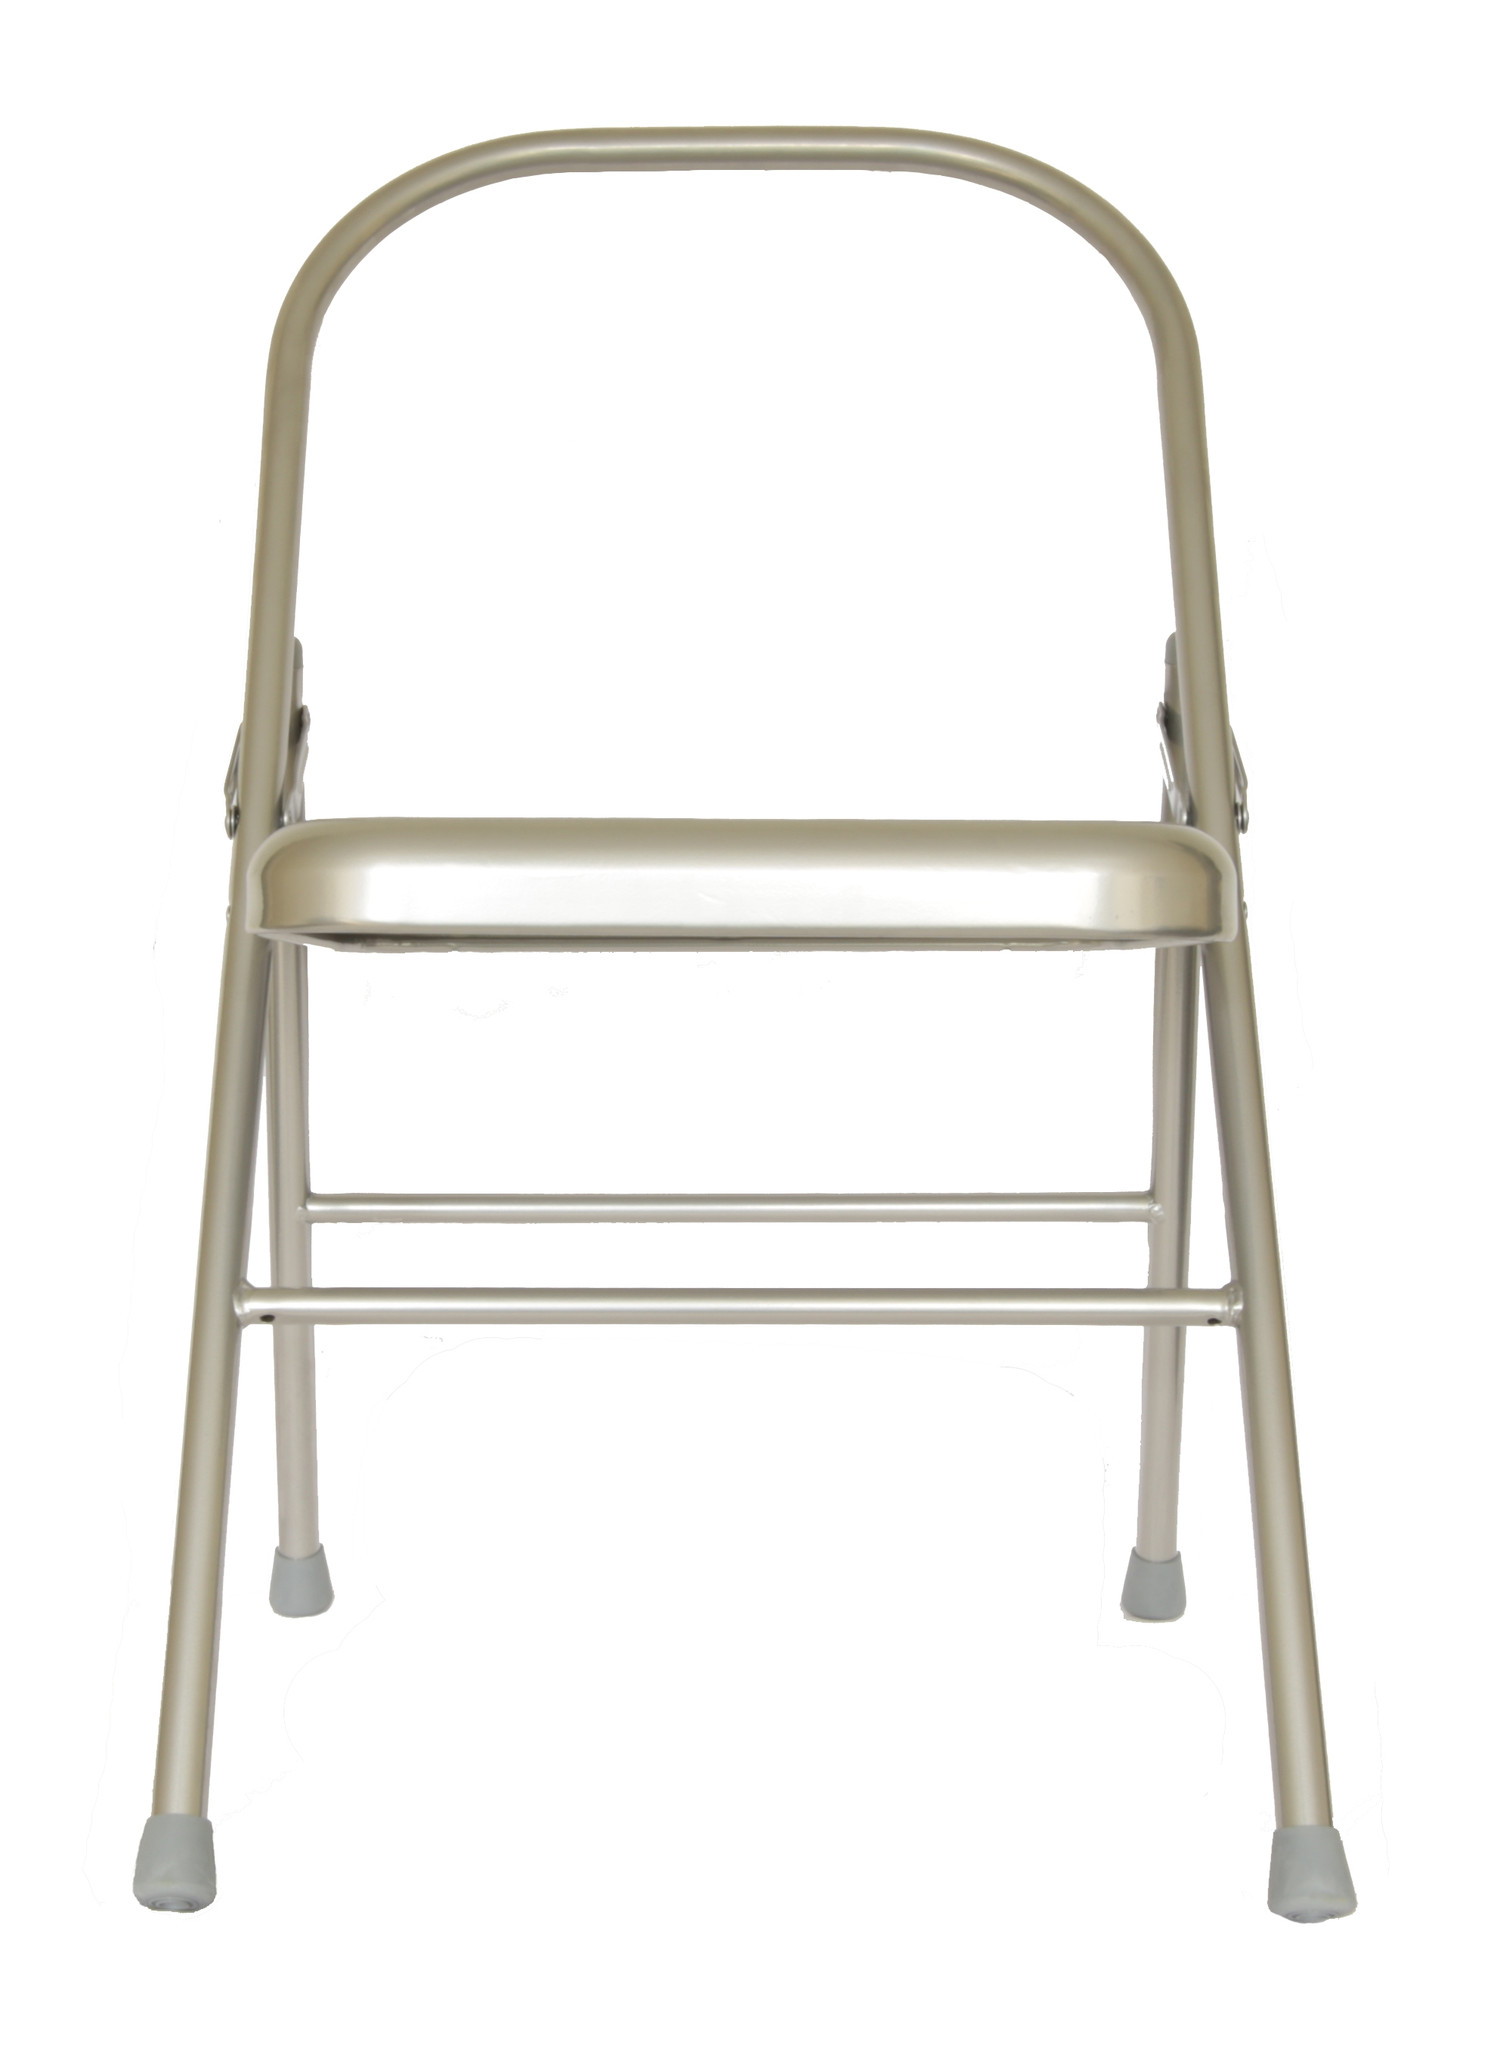 folding metal yoga chair best computer for long hours studio reinforced steel exercise fitness